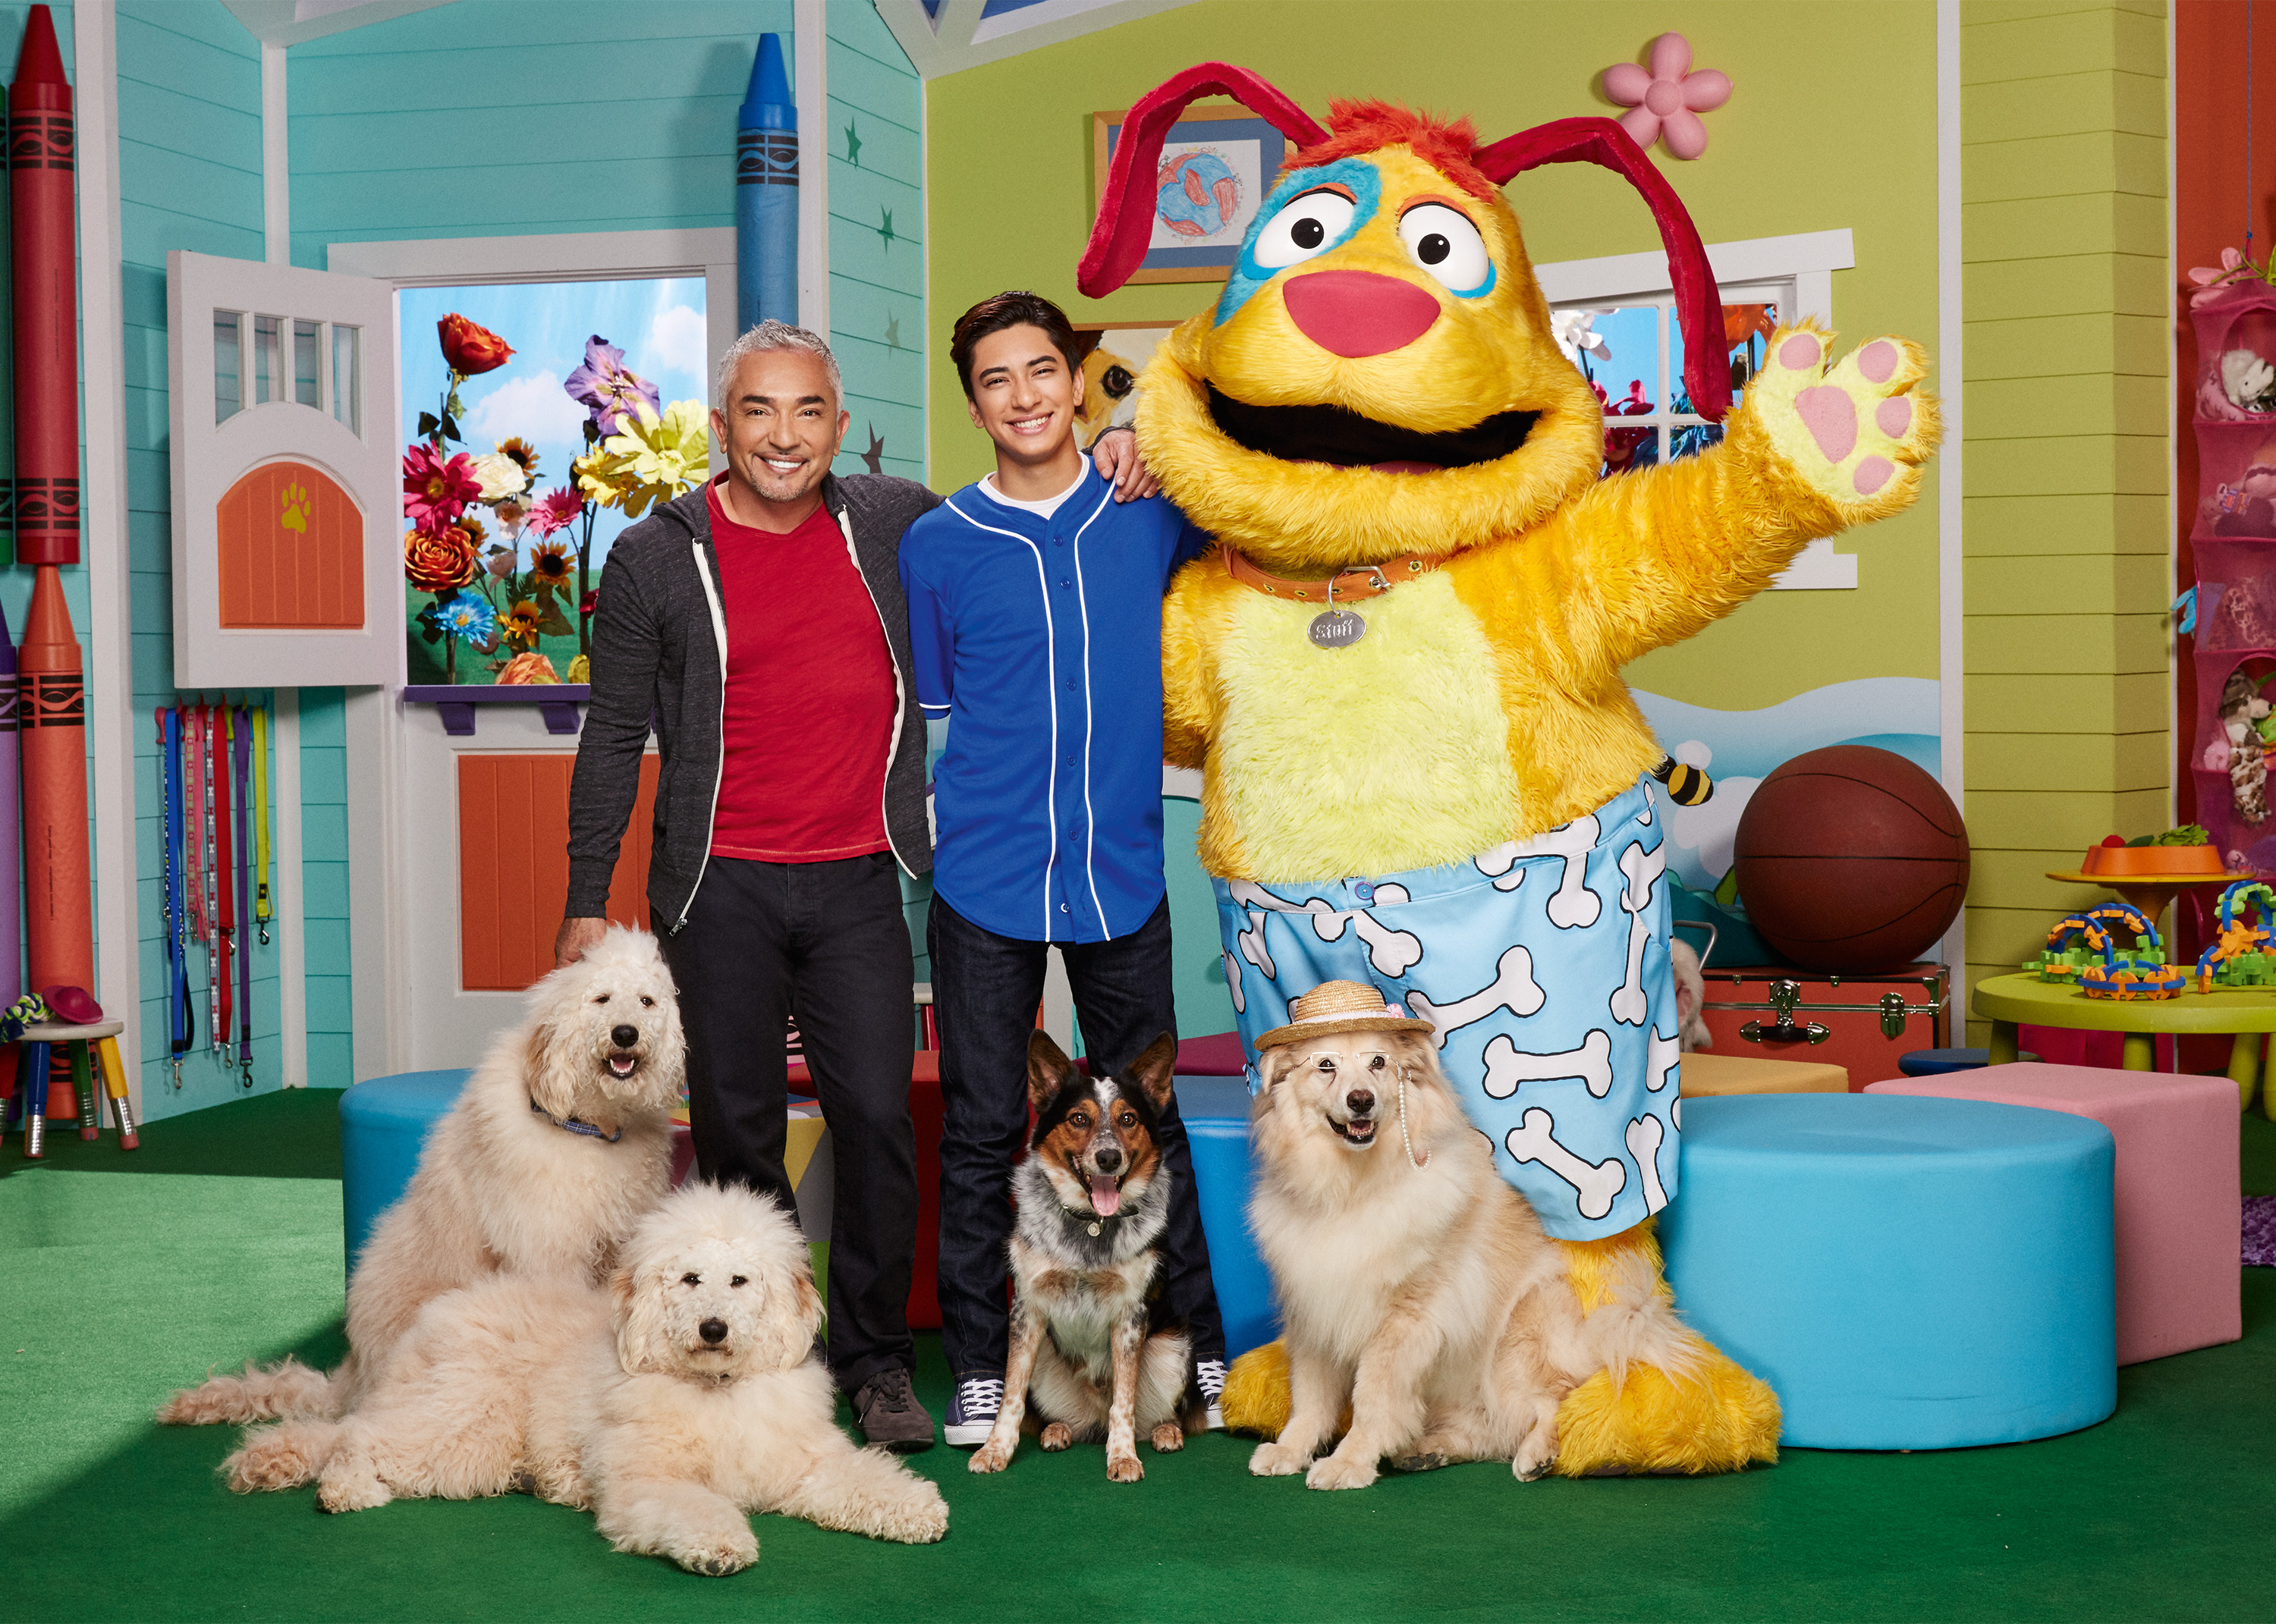 Correcting And Replacing Nickelodeon And Sid Marty Krofft Unleash